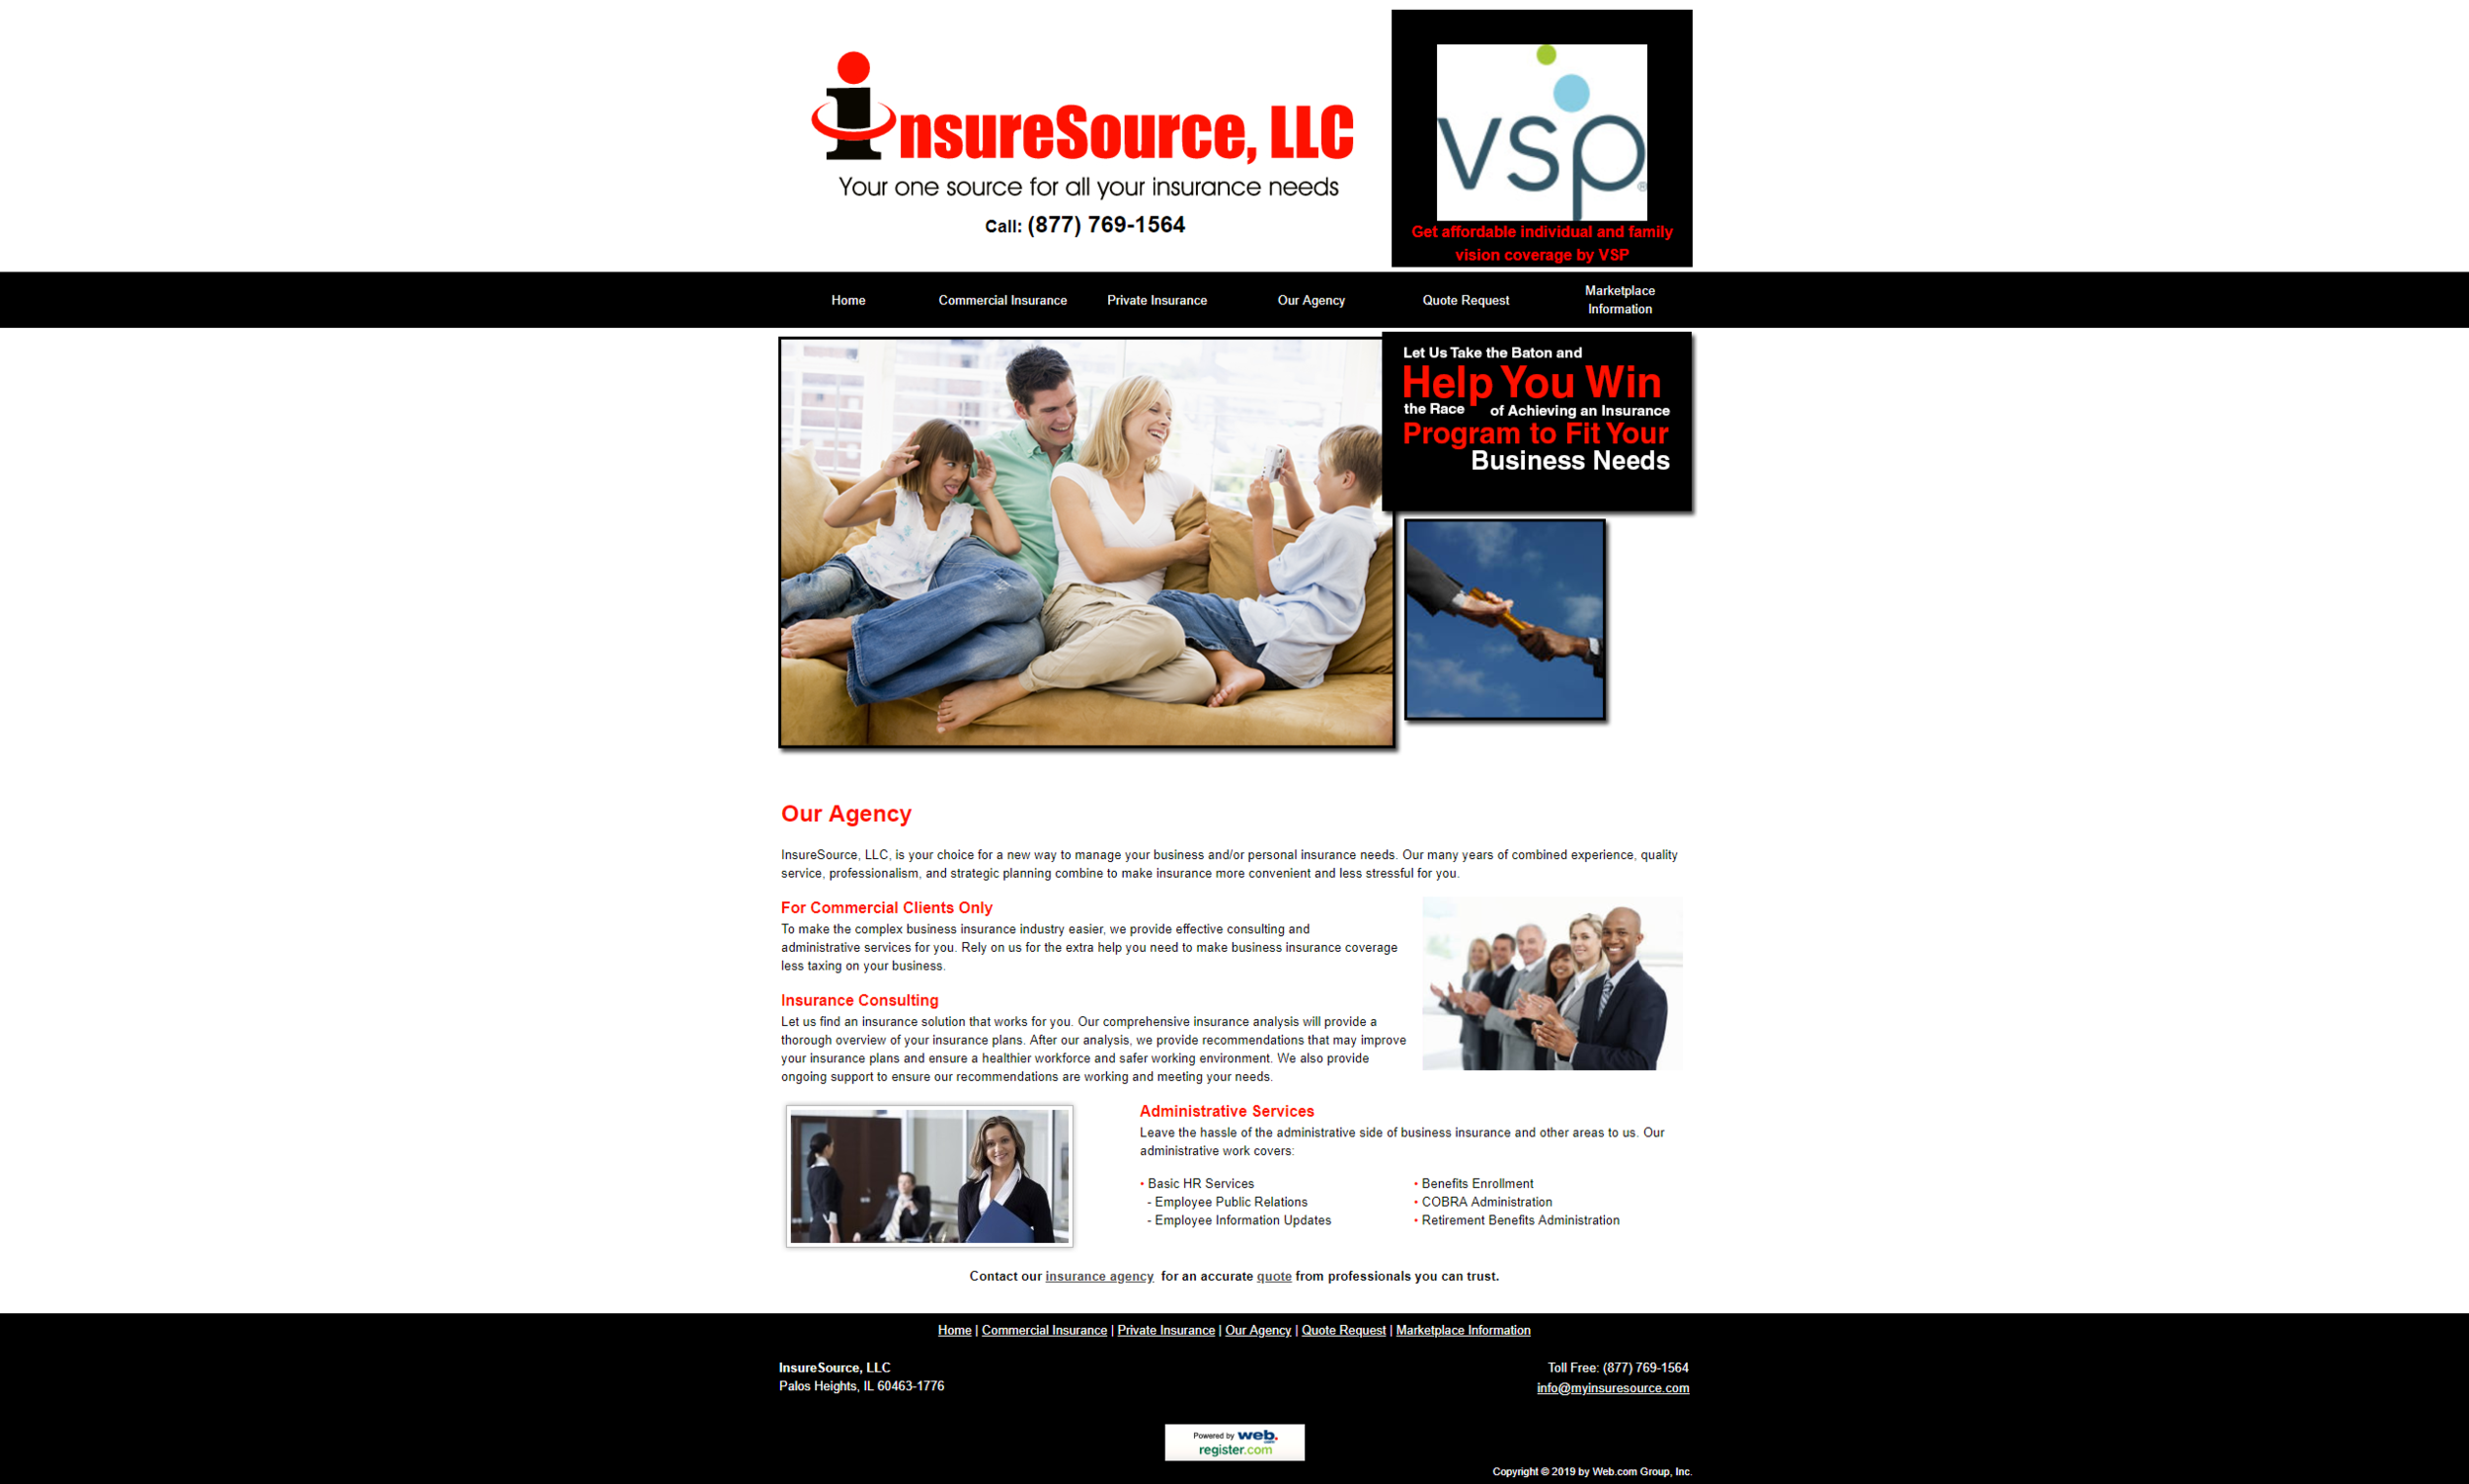 InsureSource_OldWebsite_InteriorPage.png